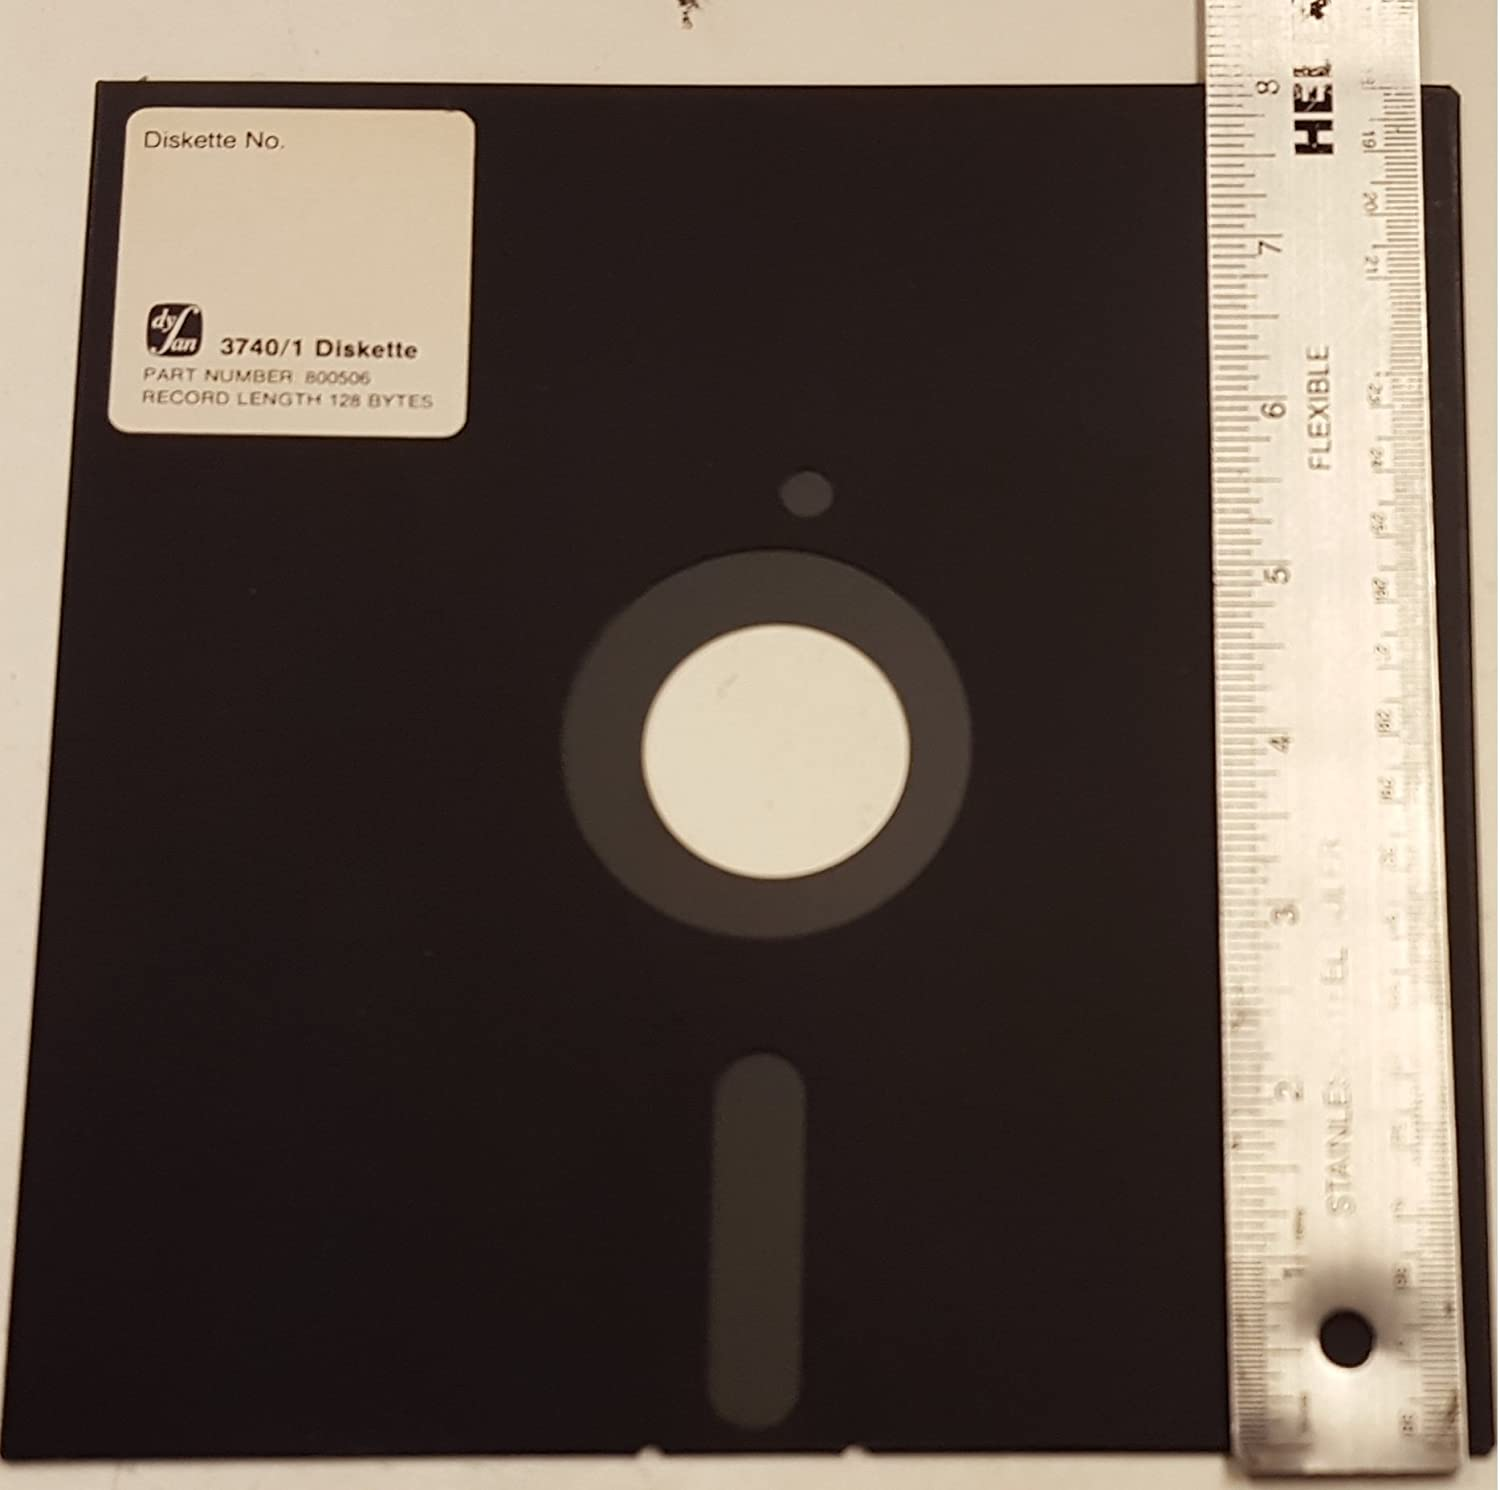 8 INCH FLOPPY DISKS! 5 Pack PROMOTIONAL//NON-WORKING FLOPPY DISKETTES.